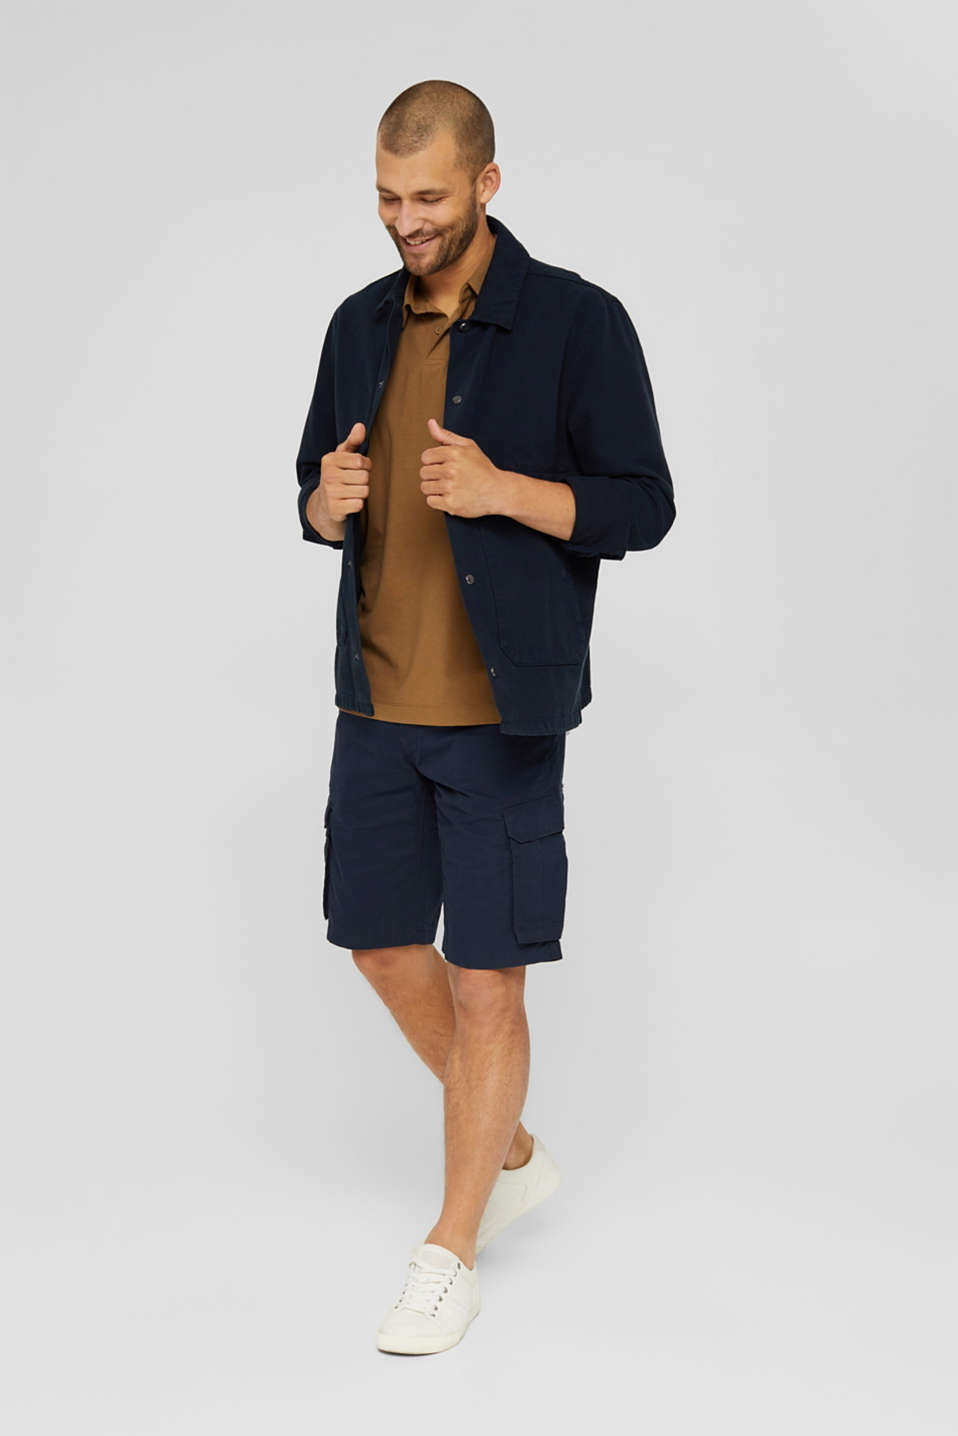 Shorts woven Relaxed fit, NAVY, detail image number 1